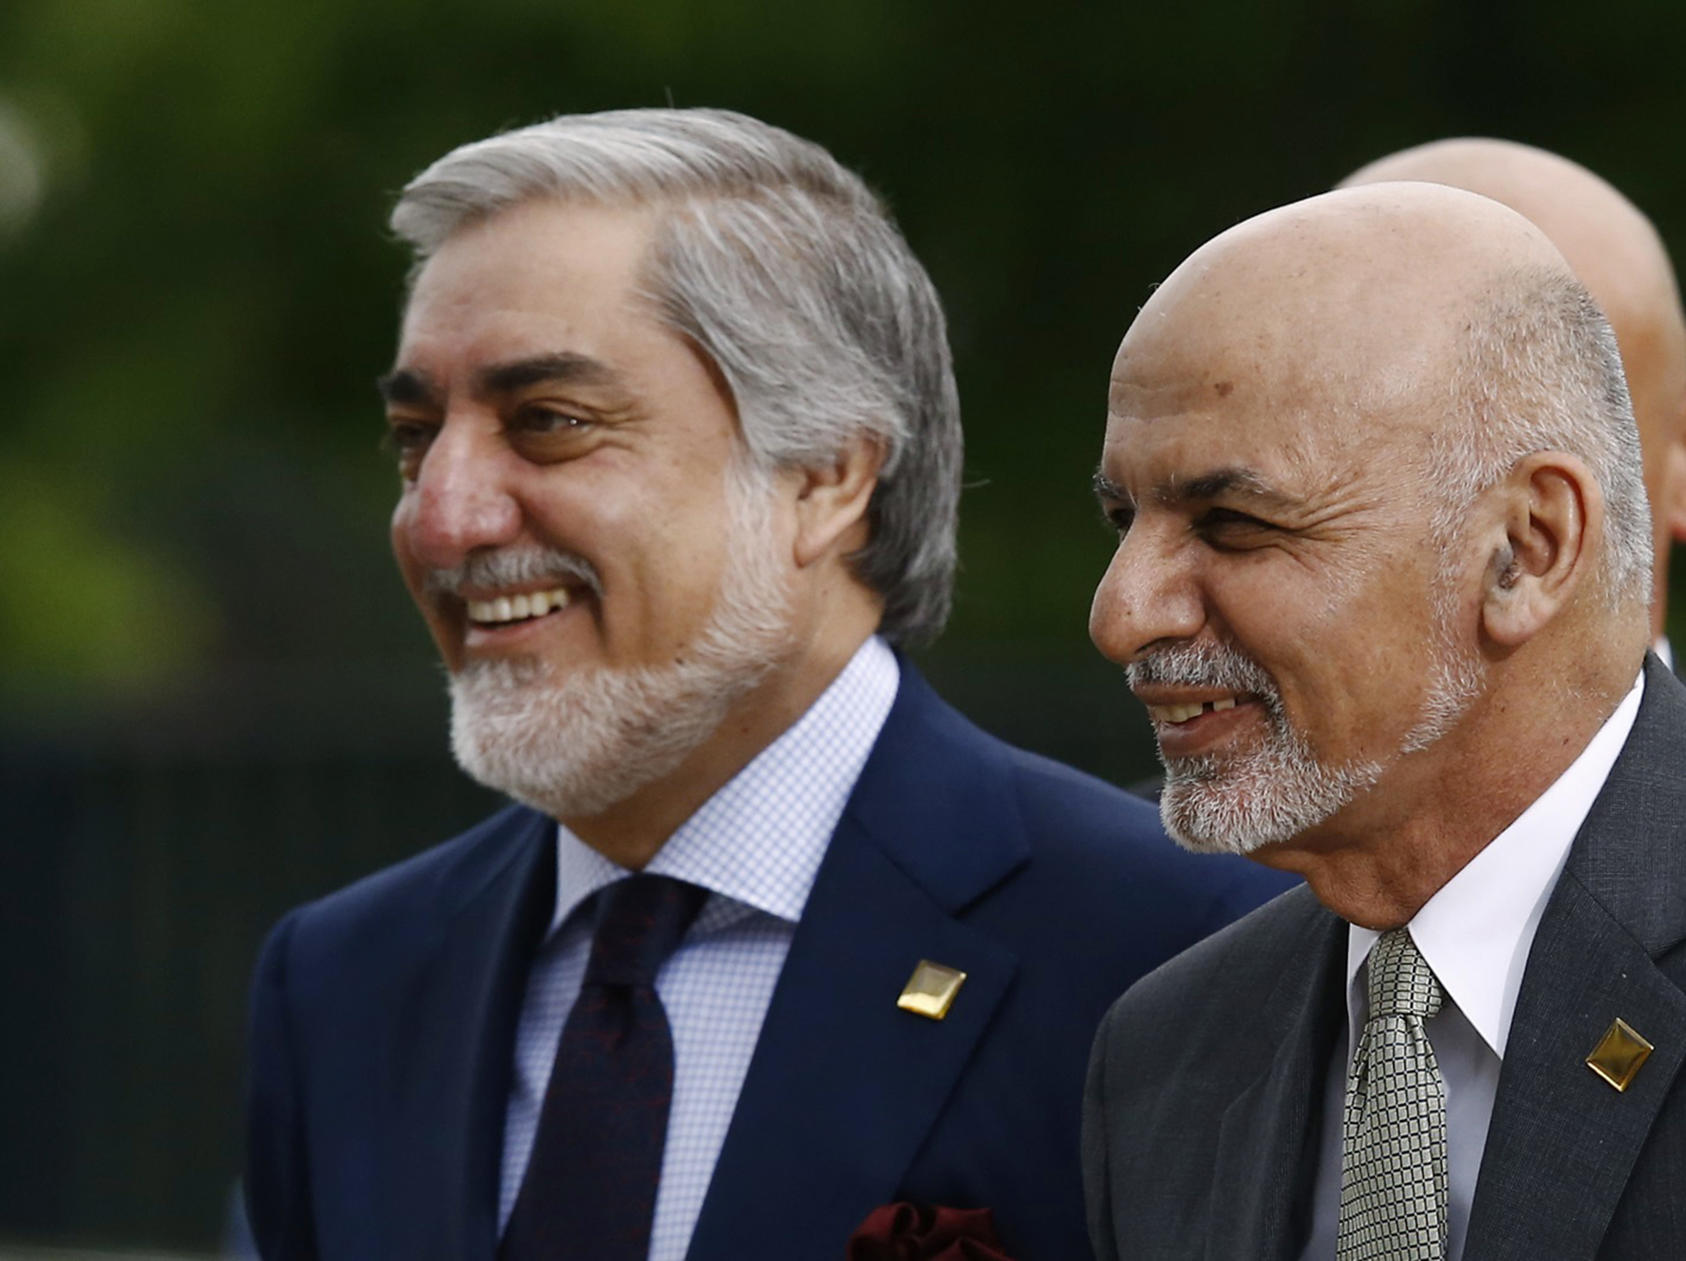 The disputed 2014 Afghan presidential election led to a power-sharing arrangement between President Ashraf Ghani (right) and rival Abdullah Abdullah. (Kacper Pempel/Reuters)